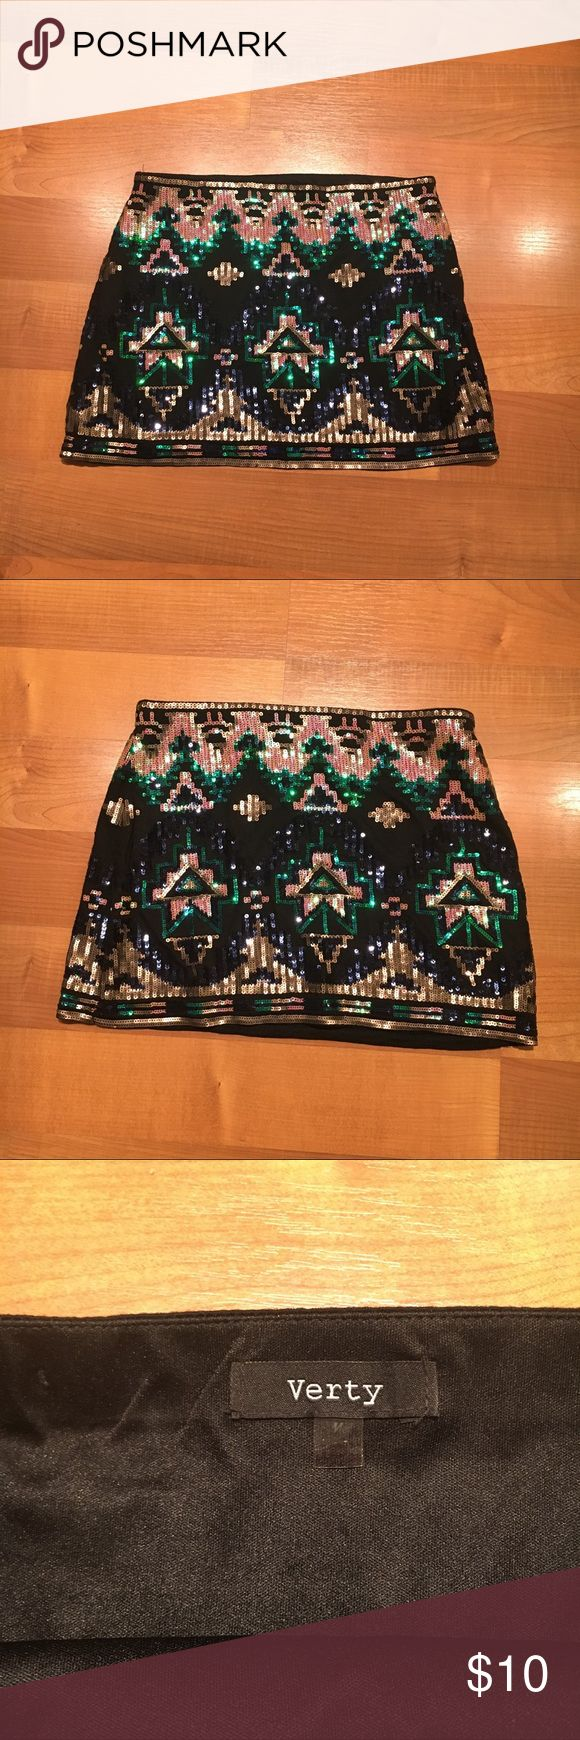 🎉 New Years Verty Aztec Sequin Skirt in Black Cute Aztec mini skirt that has sequins on both sides of the skirt. Perfect for New Years! Size medium but material is stretchy. Can fit size small as well. The stitching has come undone in one place along the inside top of the skirt. Can be trimmed away and does not affect wearability. This is a perfect skirt for a night out. Smoke free home. Bundle to save 30%. verty Skirts Mini